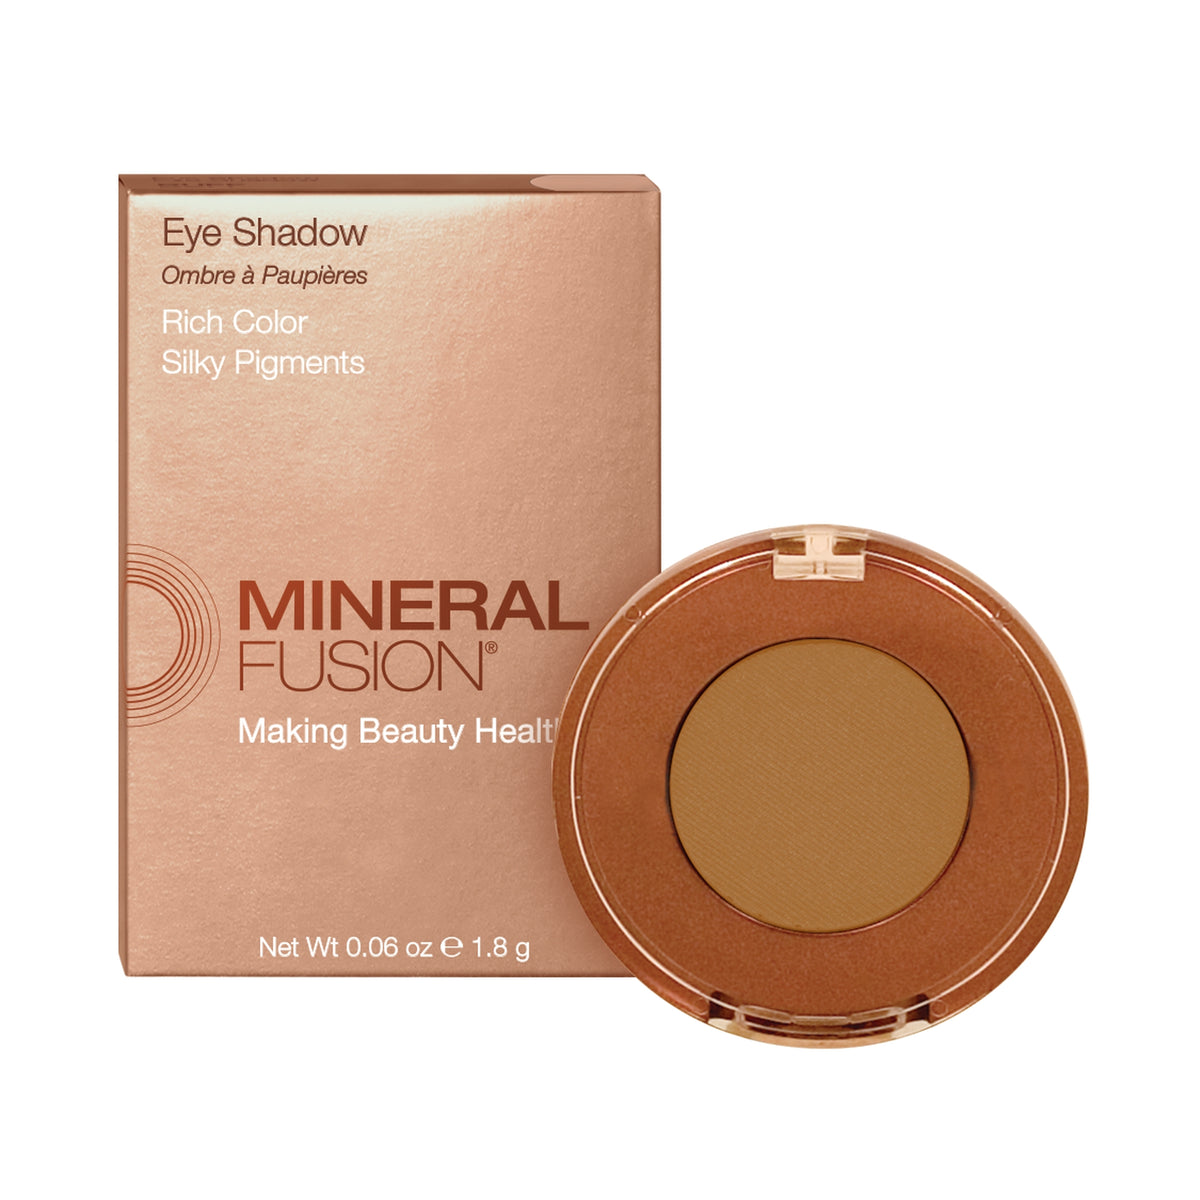 Mineral Fusion Eye Shadow in Stone